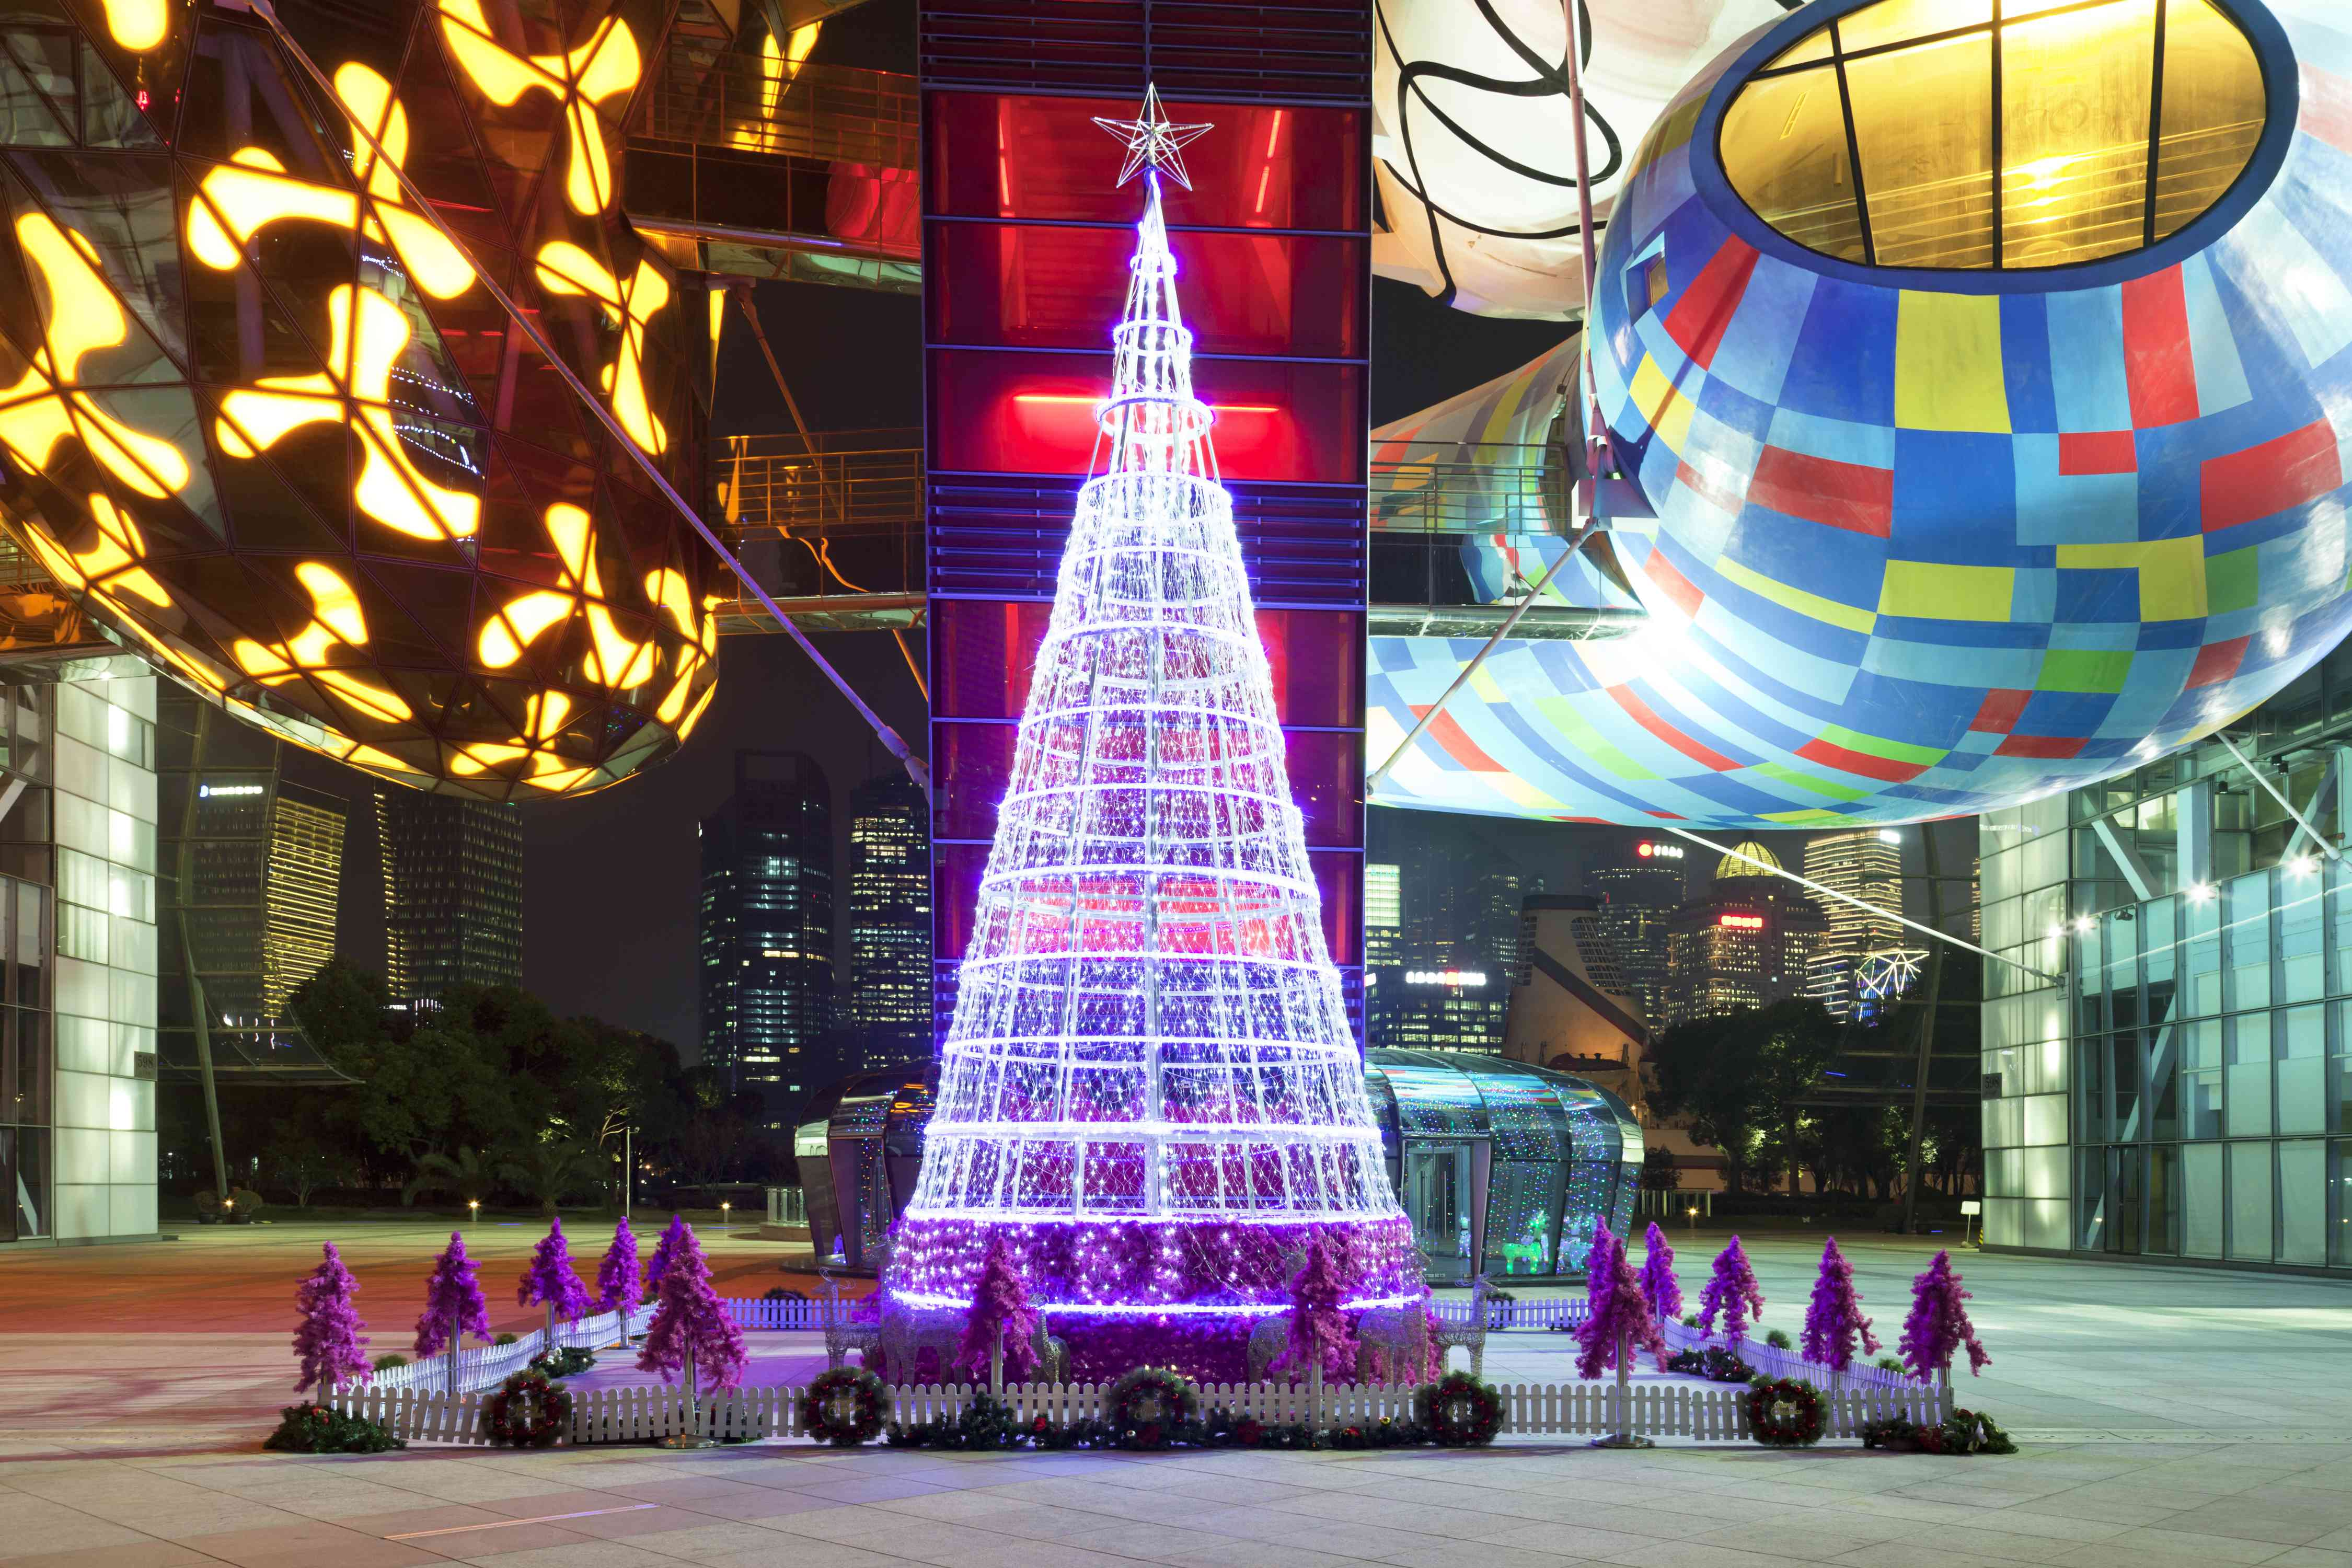 A colorful Christmas display in Shanghai